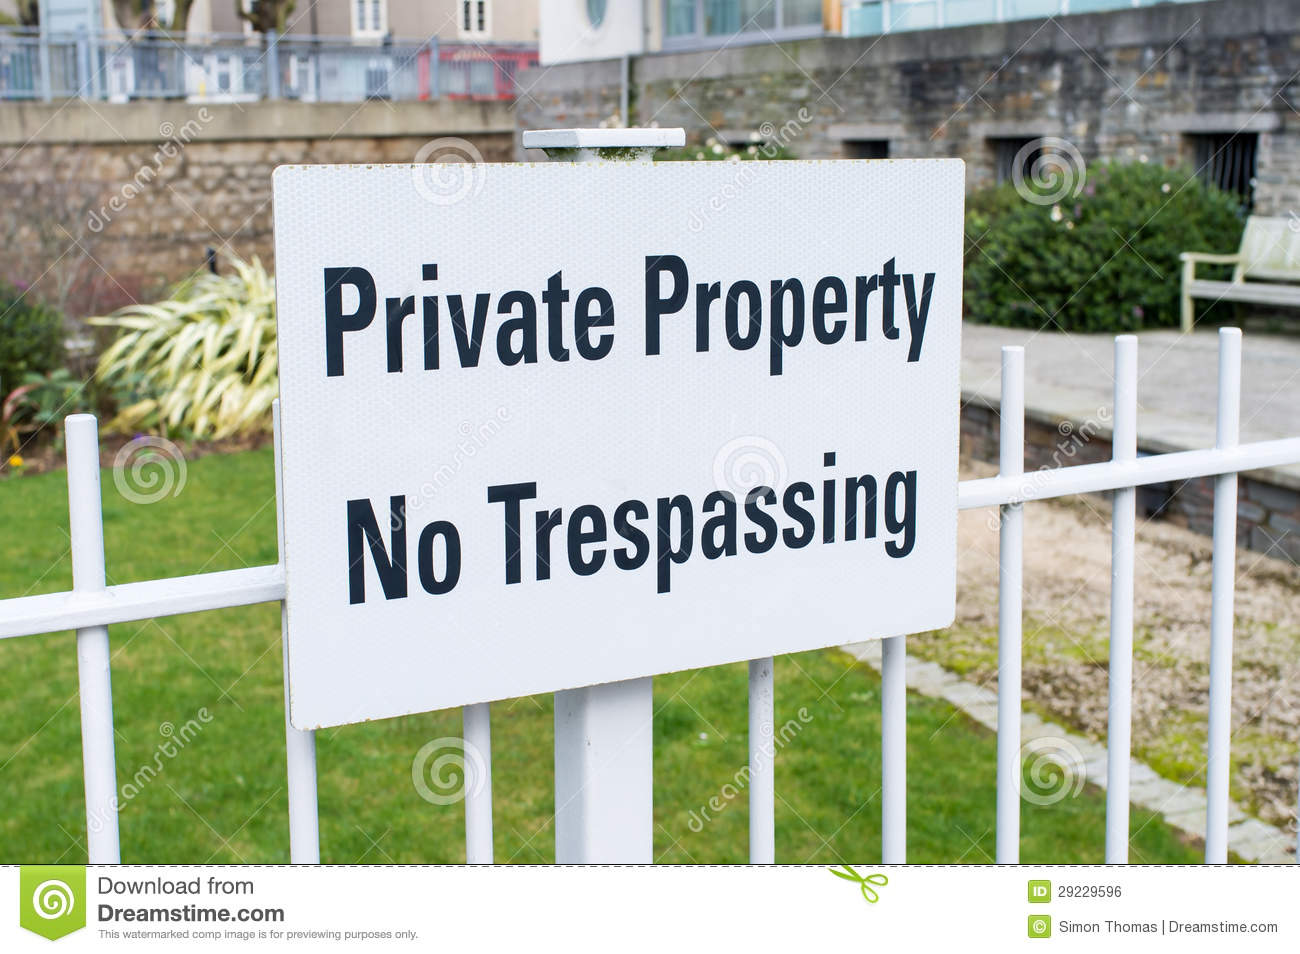 Private Property No Trespassing Royalty Free Stock Image.